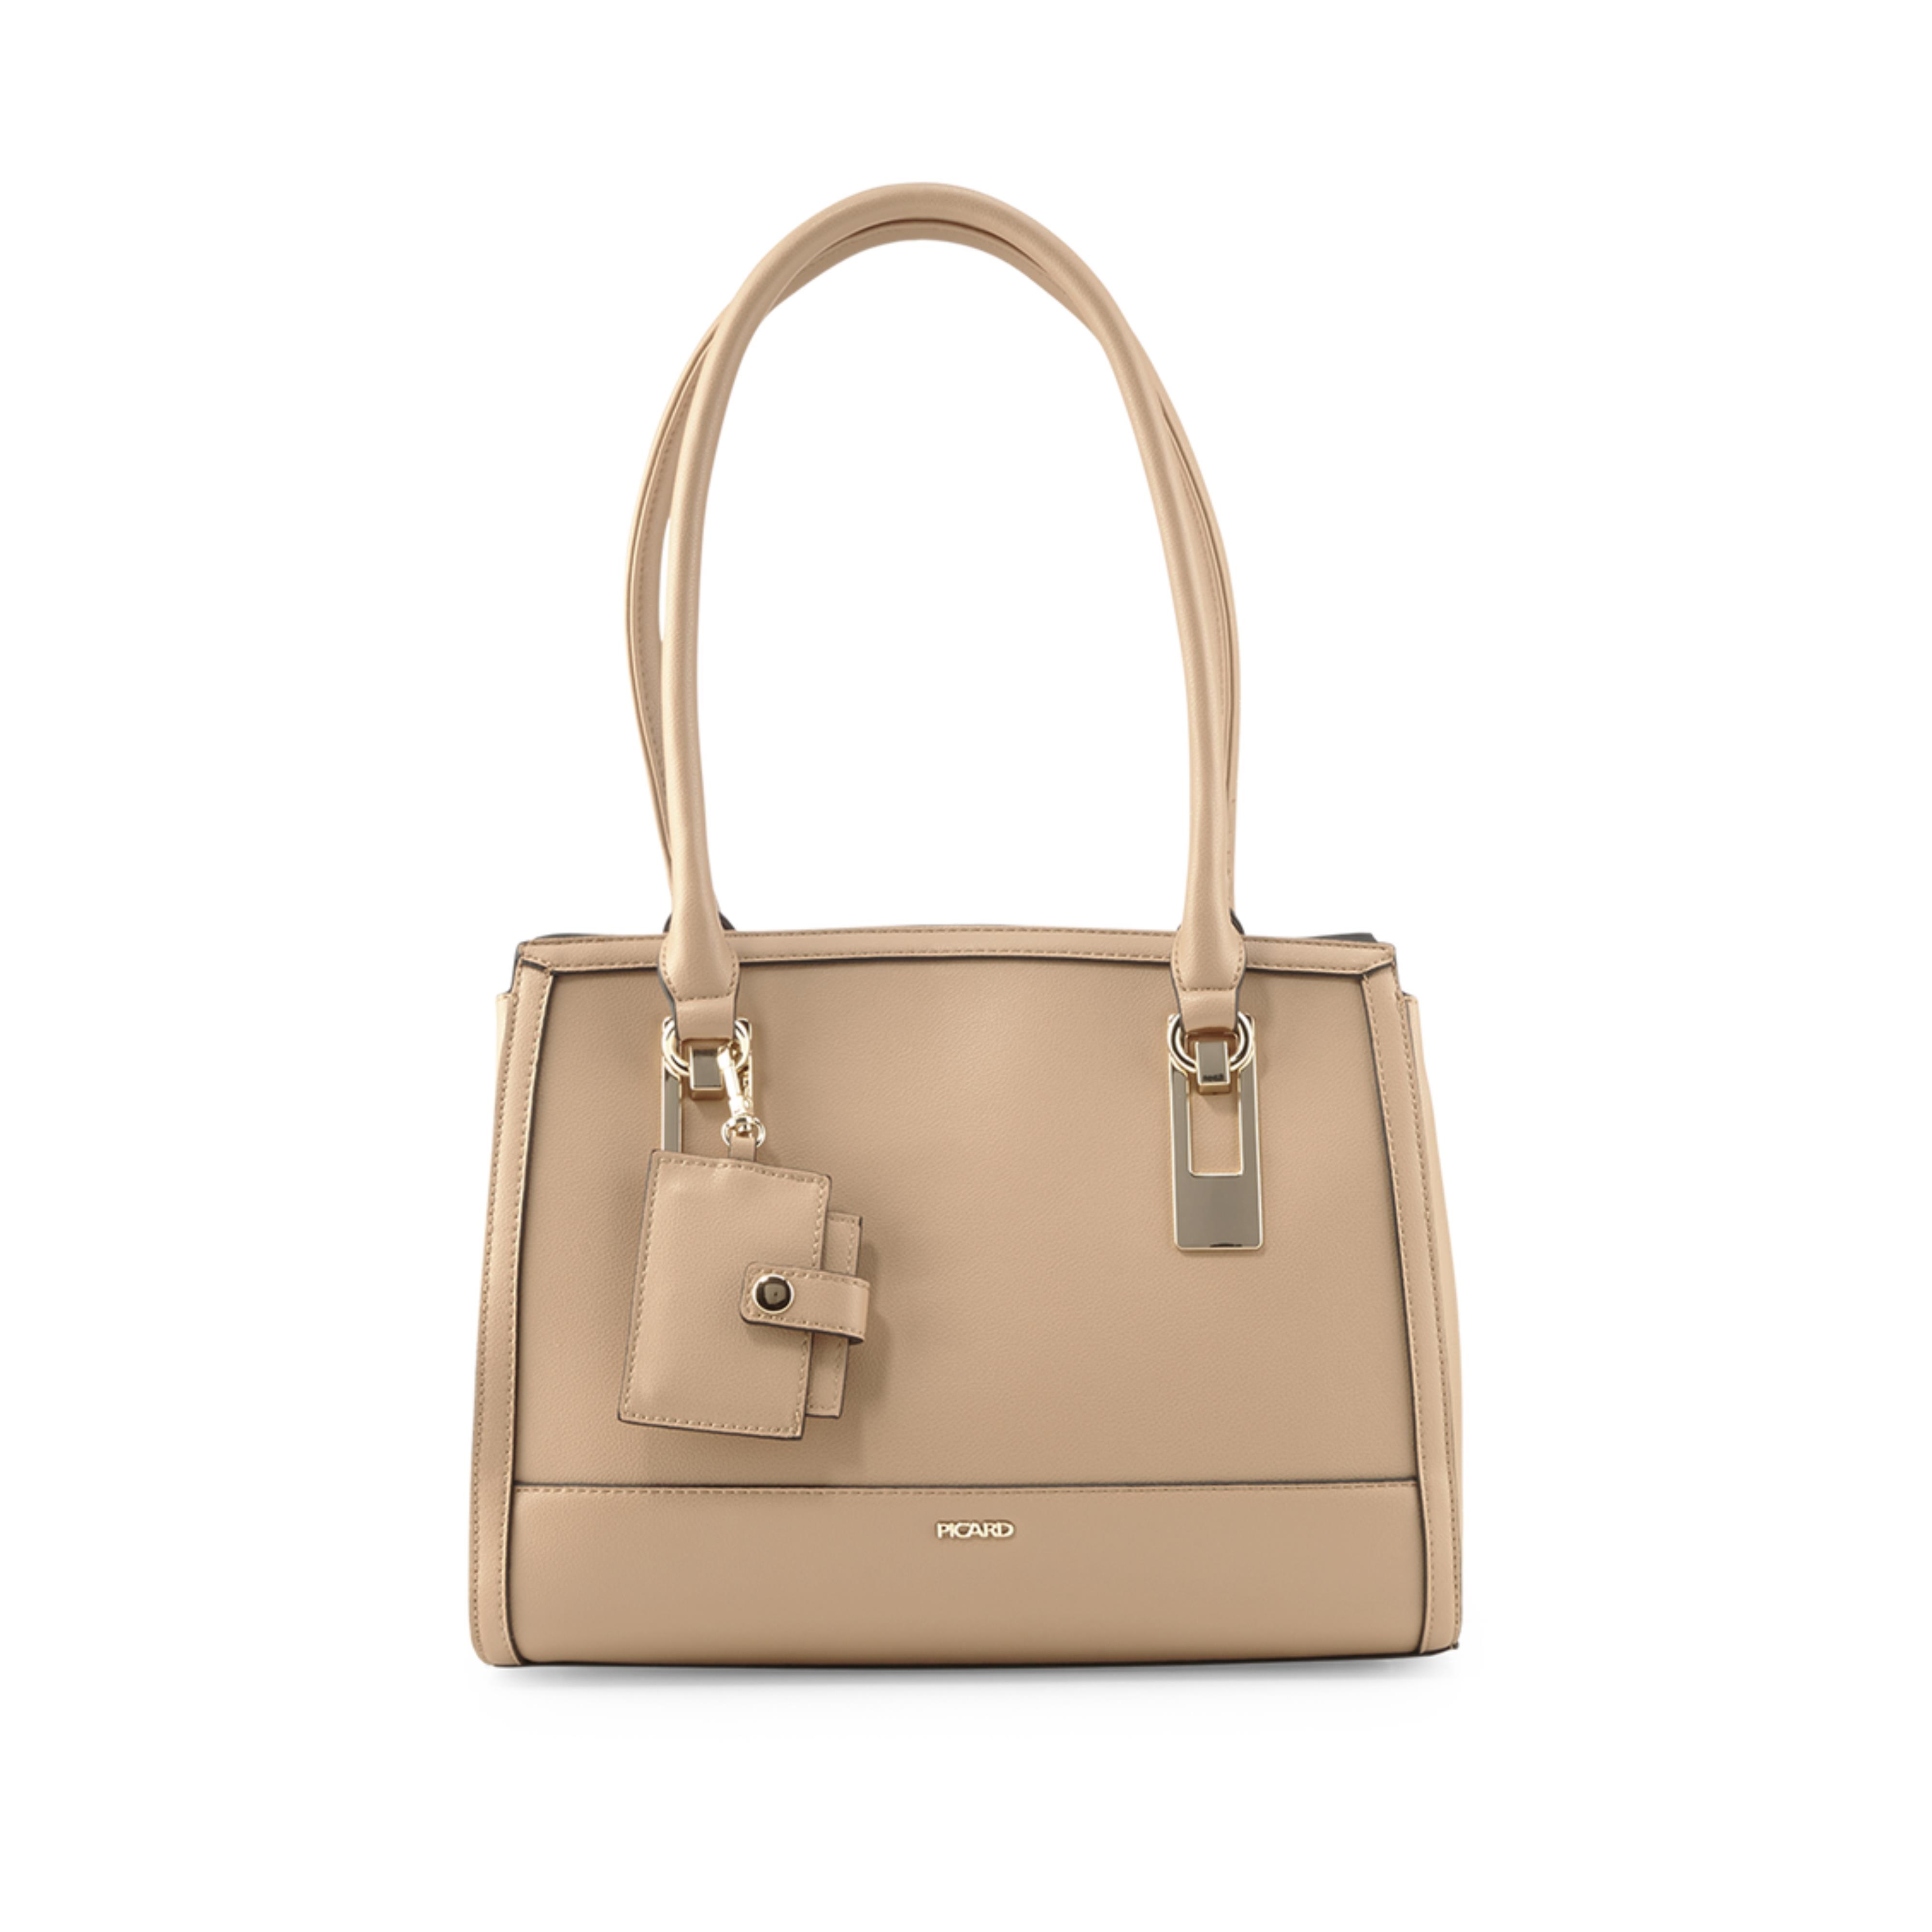 2d41e0747bd28 PICARD Tasche Missis Nature 2575 Marke Picard